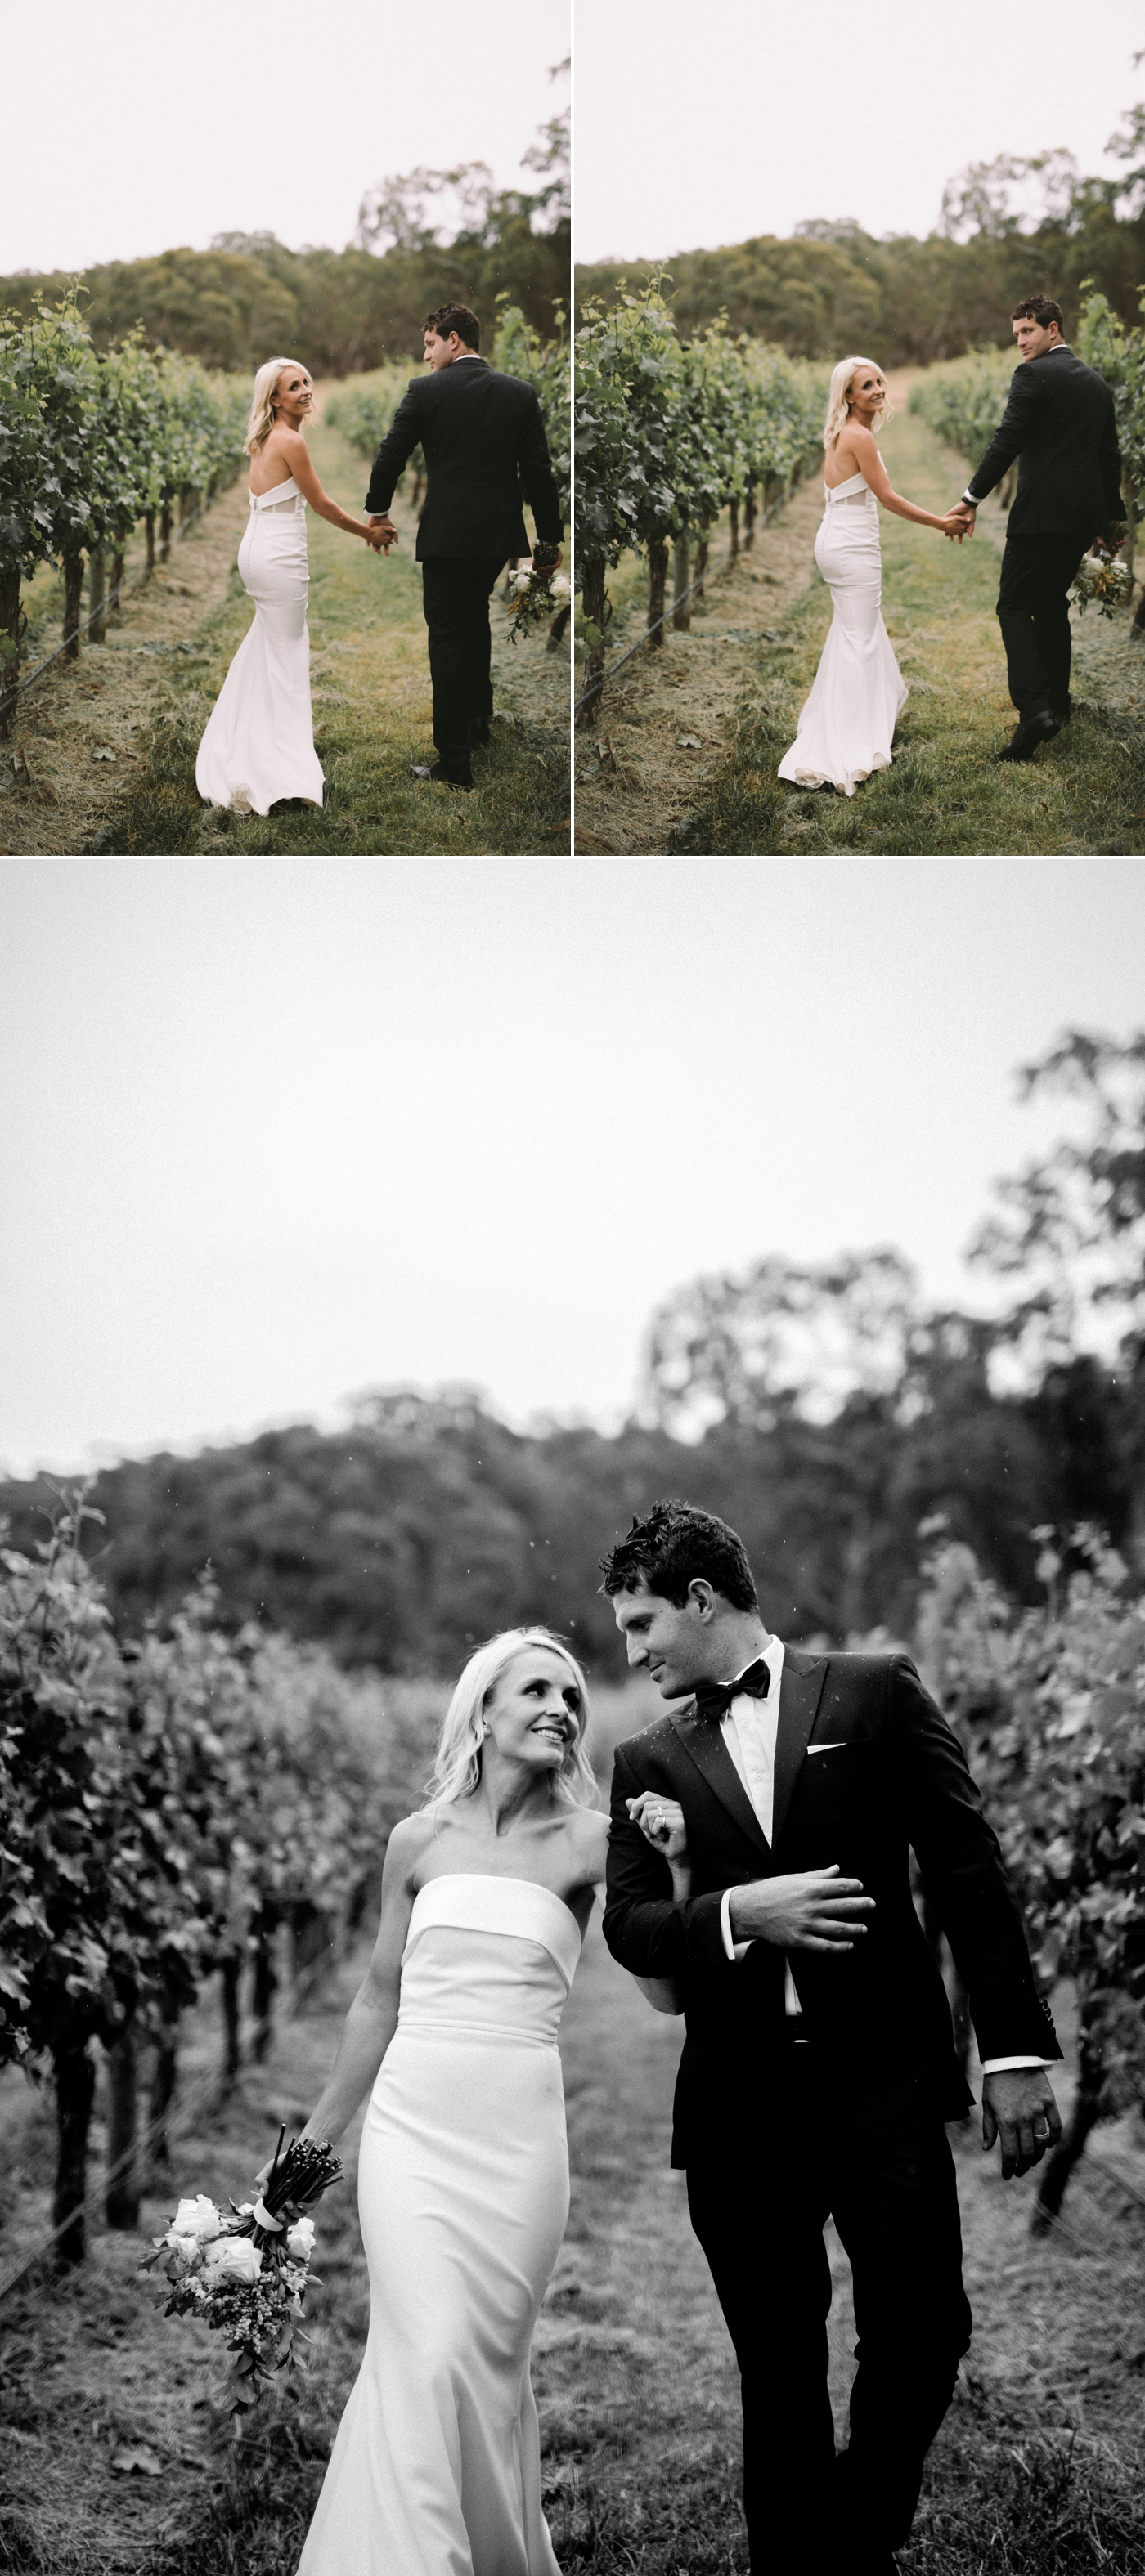 Rebecca & Daniel - Adelaide Hills Private Property Wedding Photographer - Fine Art Wedding Photographer Australia - Katherine Schultz - www.katherineschultzphotography.com_0057.jpg